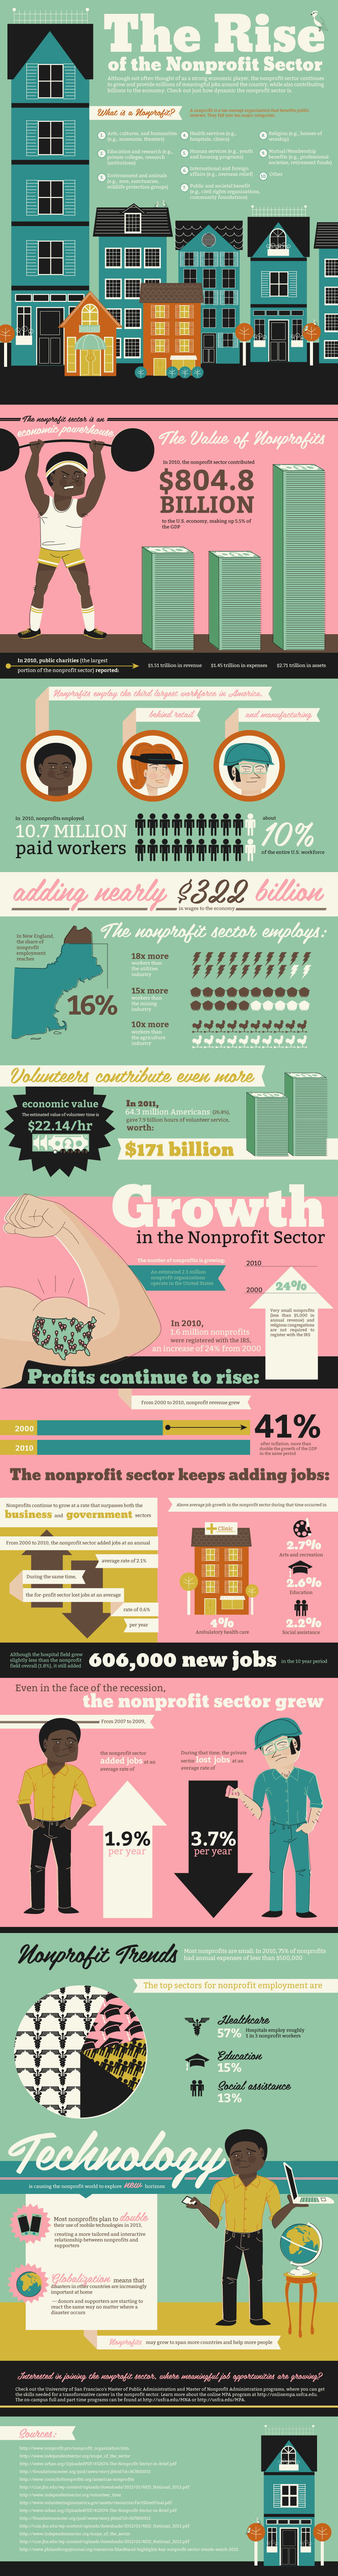 The Rise of the Nonprofit Sector